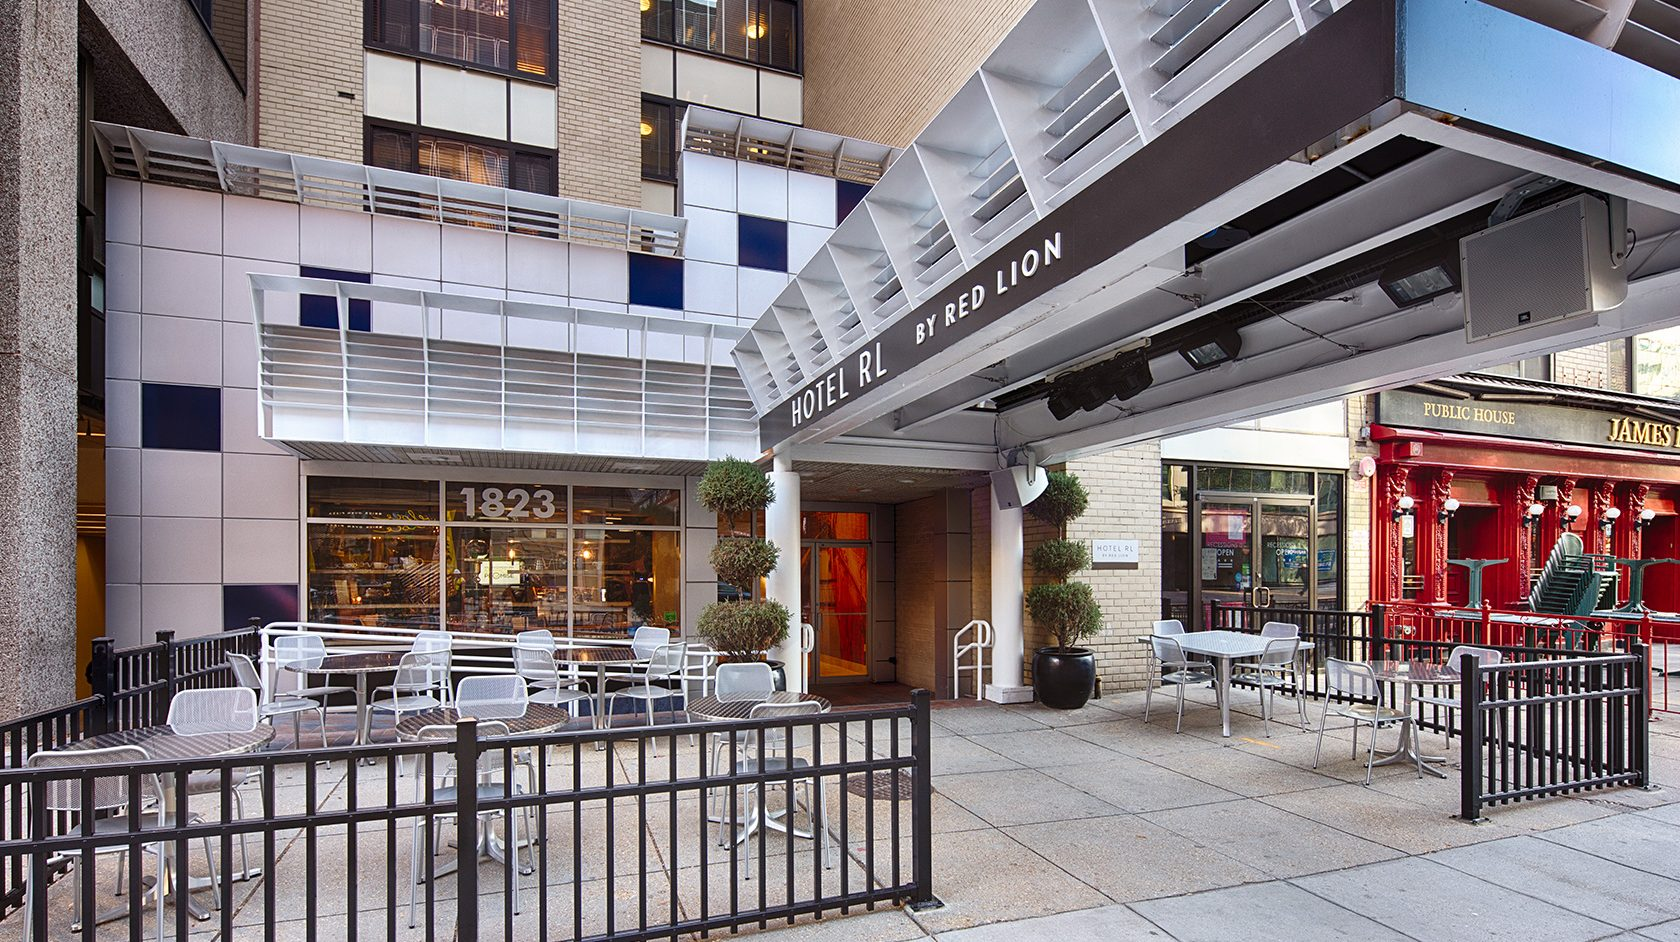 Boutique hotel in washington dc hotel rl washington dc for Boutique hotel washington dc